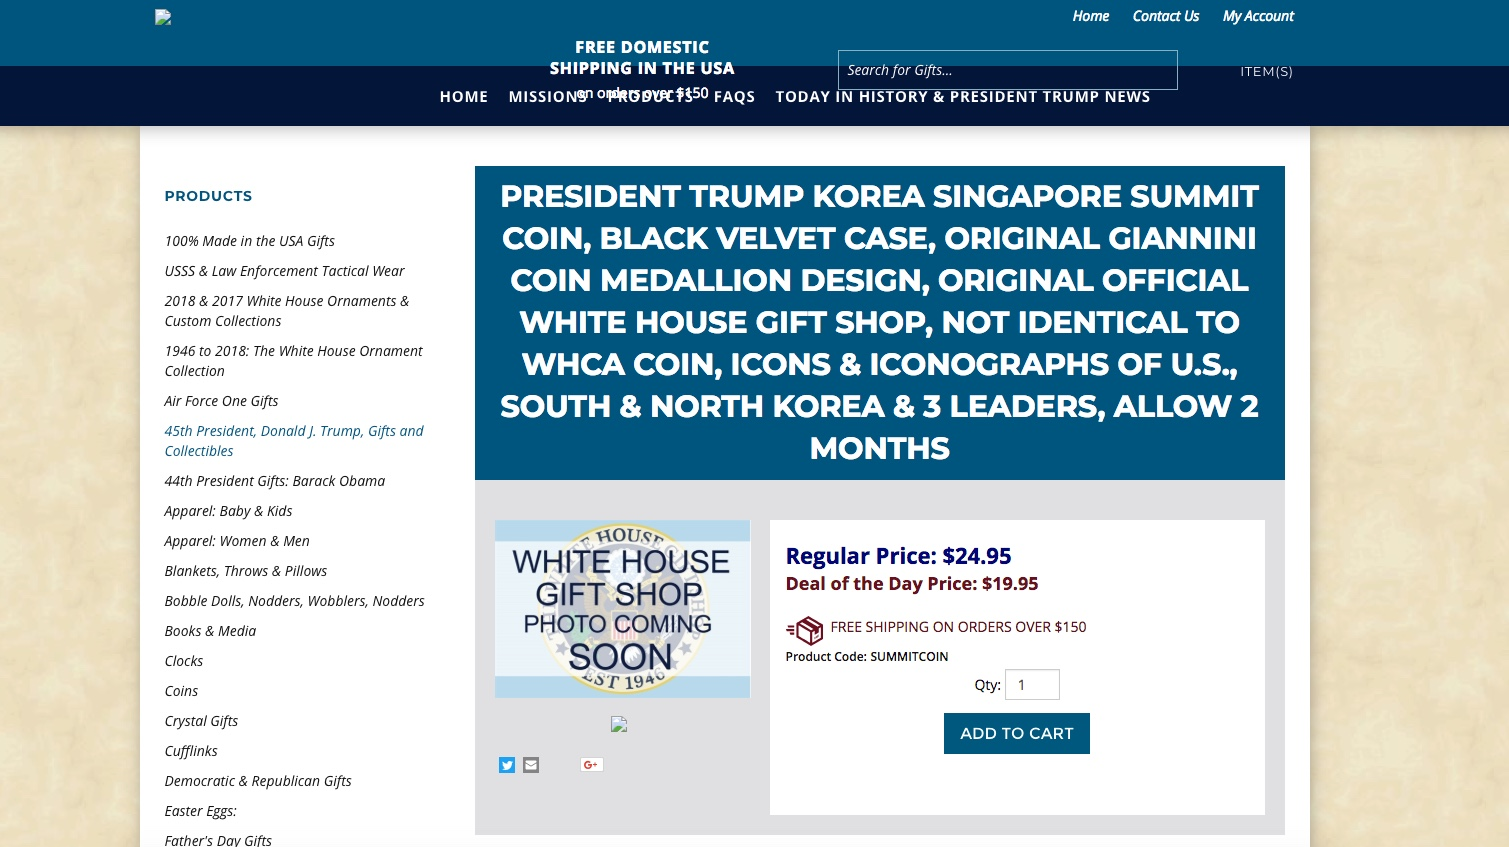 The White House Gift Shop is offering discounts on commemorative coins for the now-canceled North Korea-U.S. summit